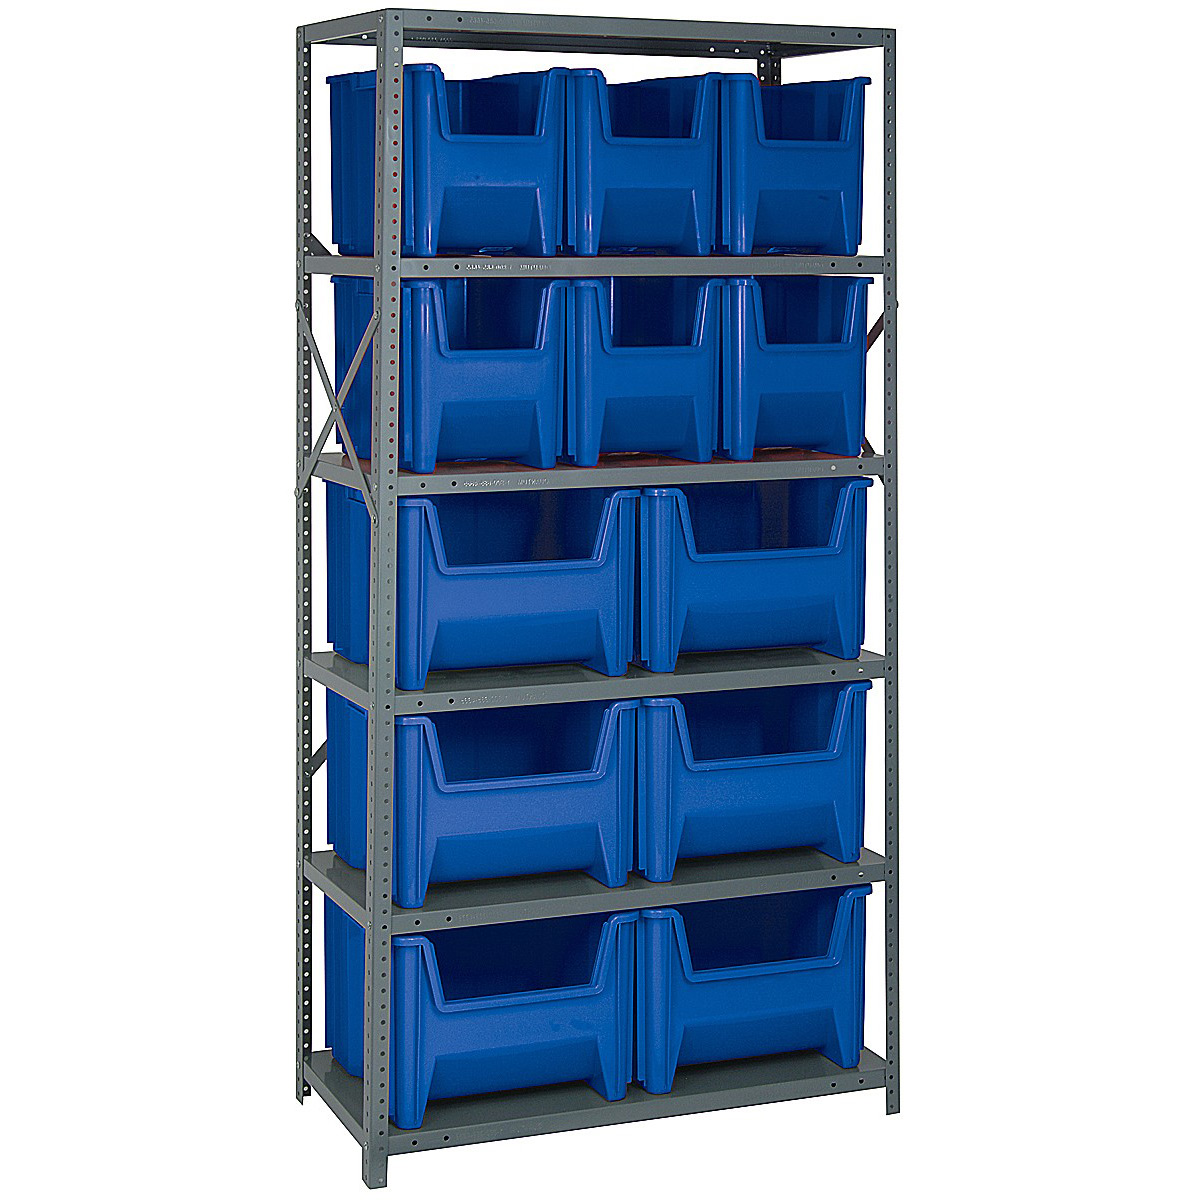 shelves garage bin concept bolts containers shop picture system baskets storage creative diy conceptng lowes bins com at shelf